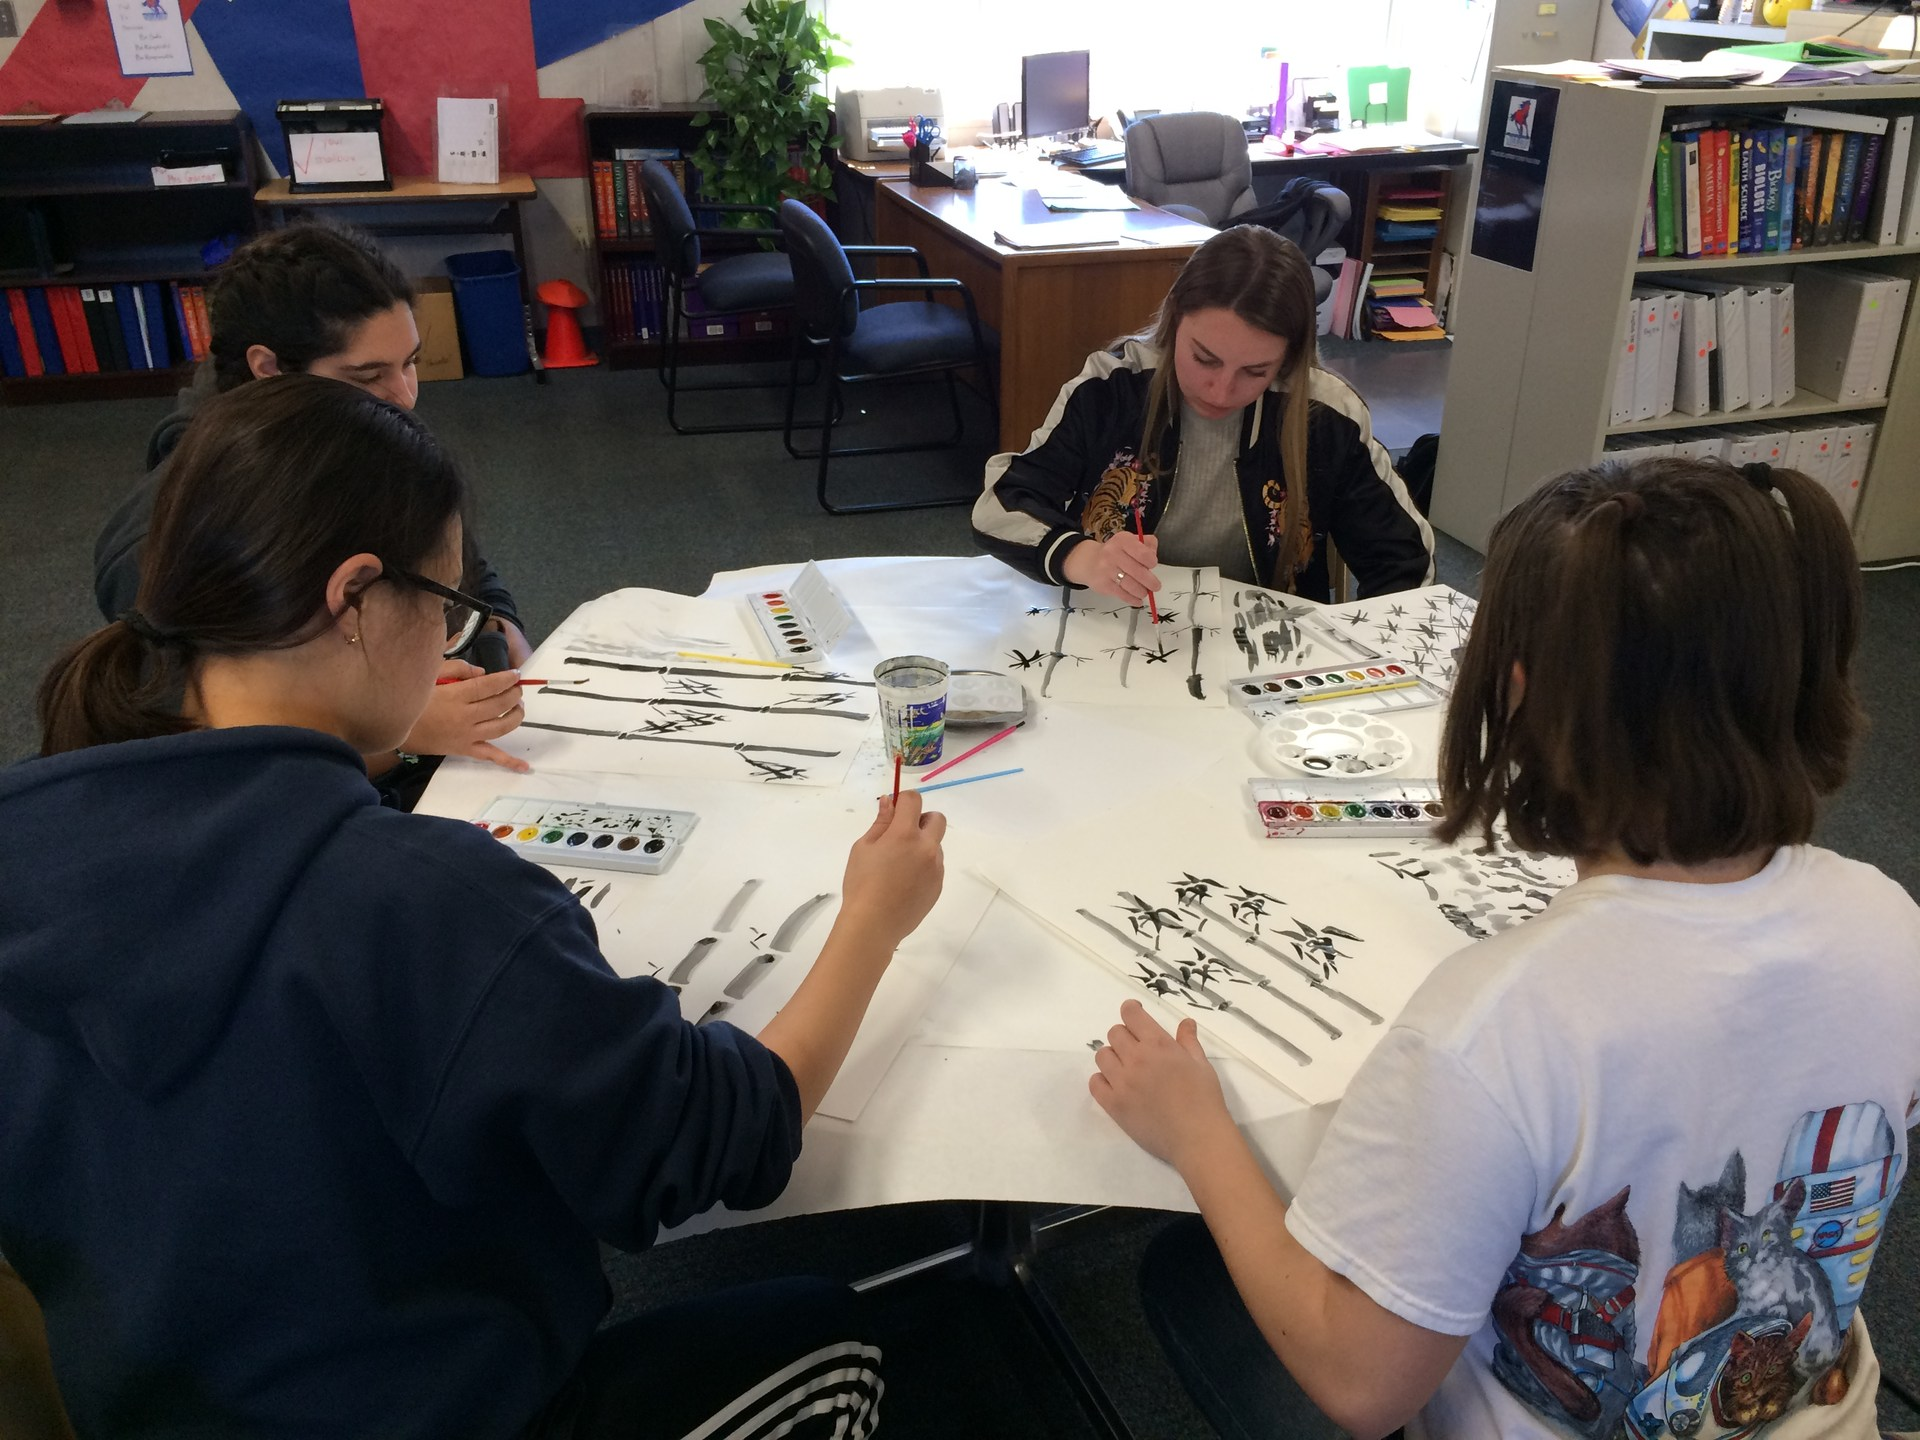 Students working on art project.